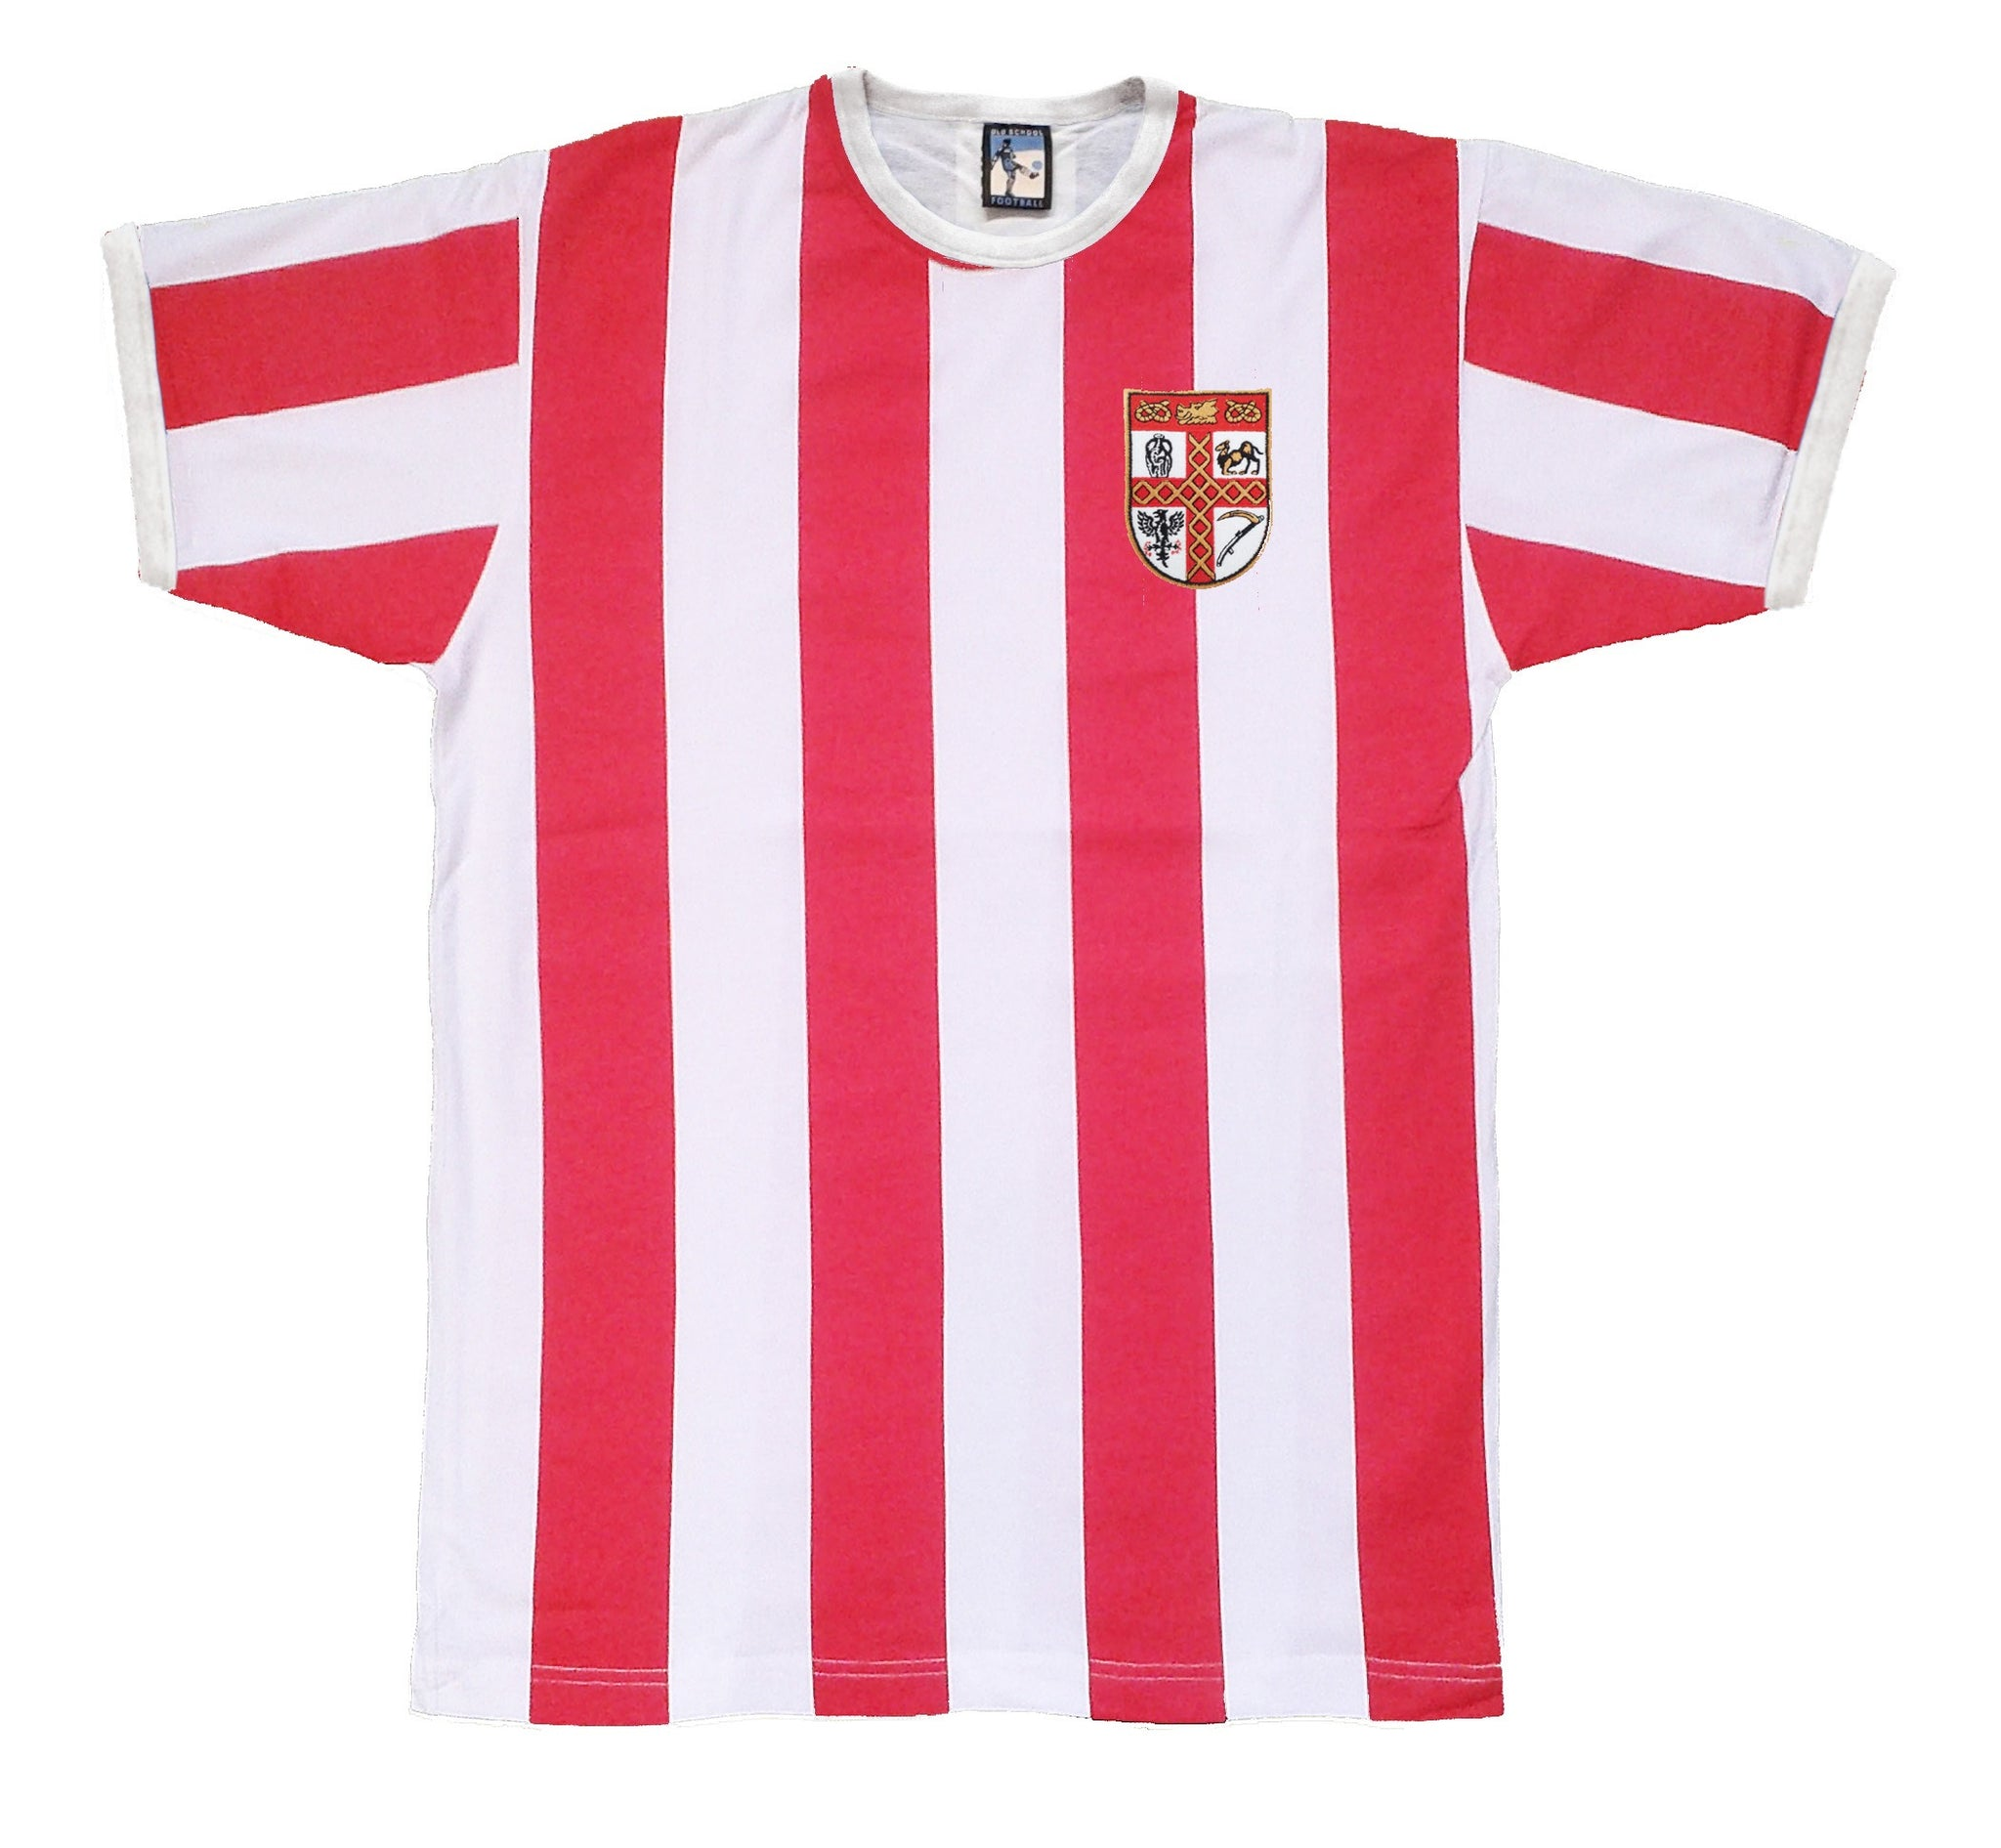 Stoke City Retro Football T Shirt 1953 - 1957 - T-shirt